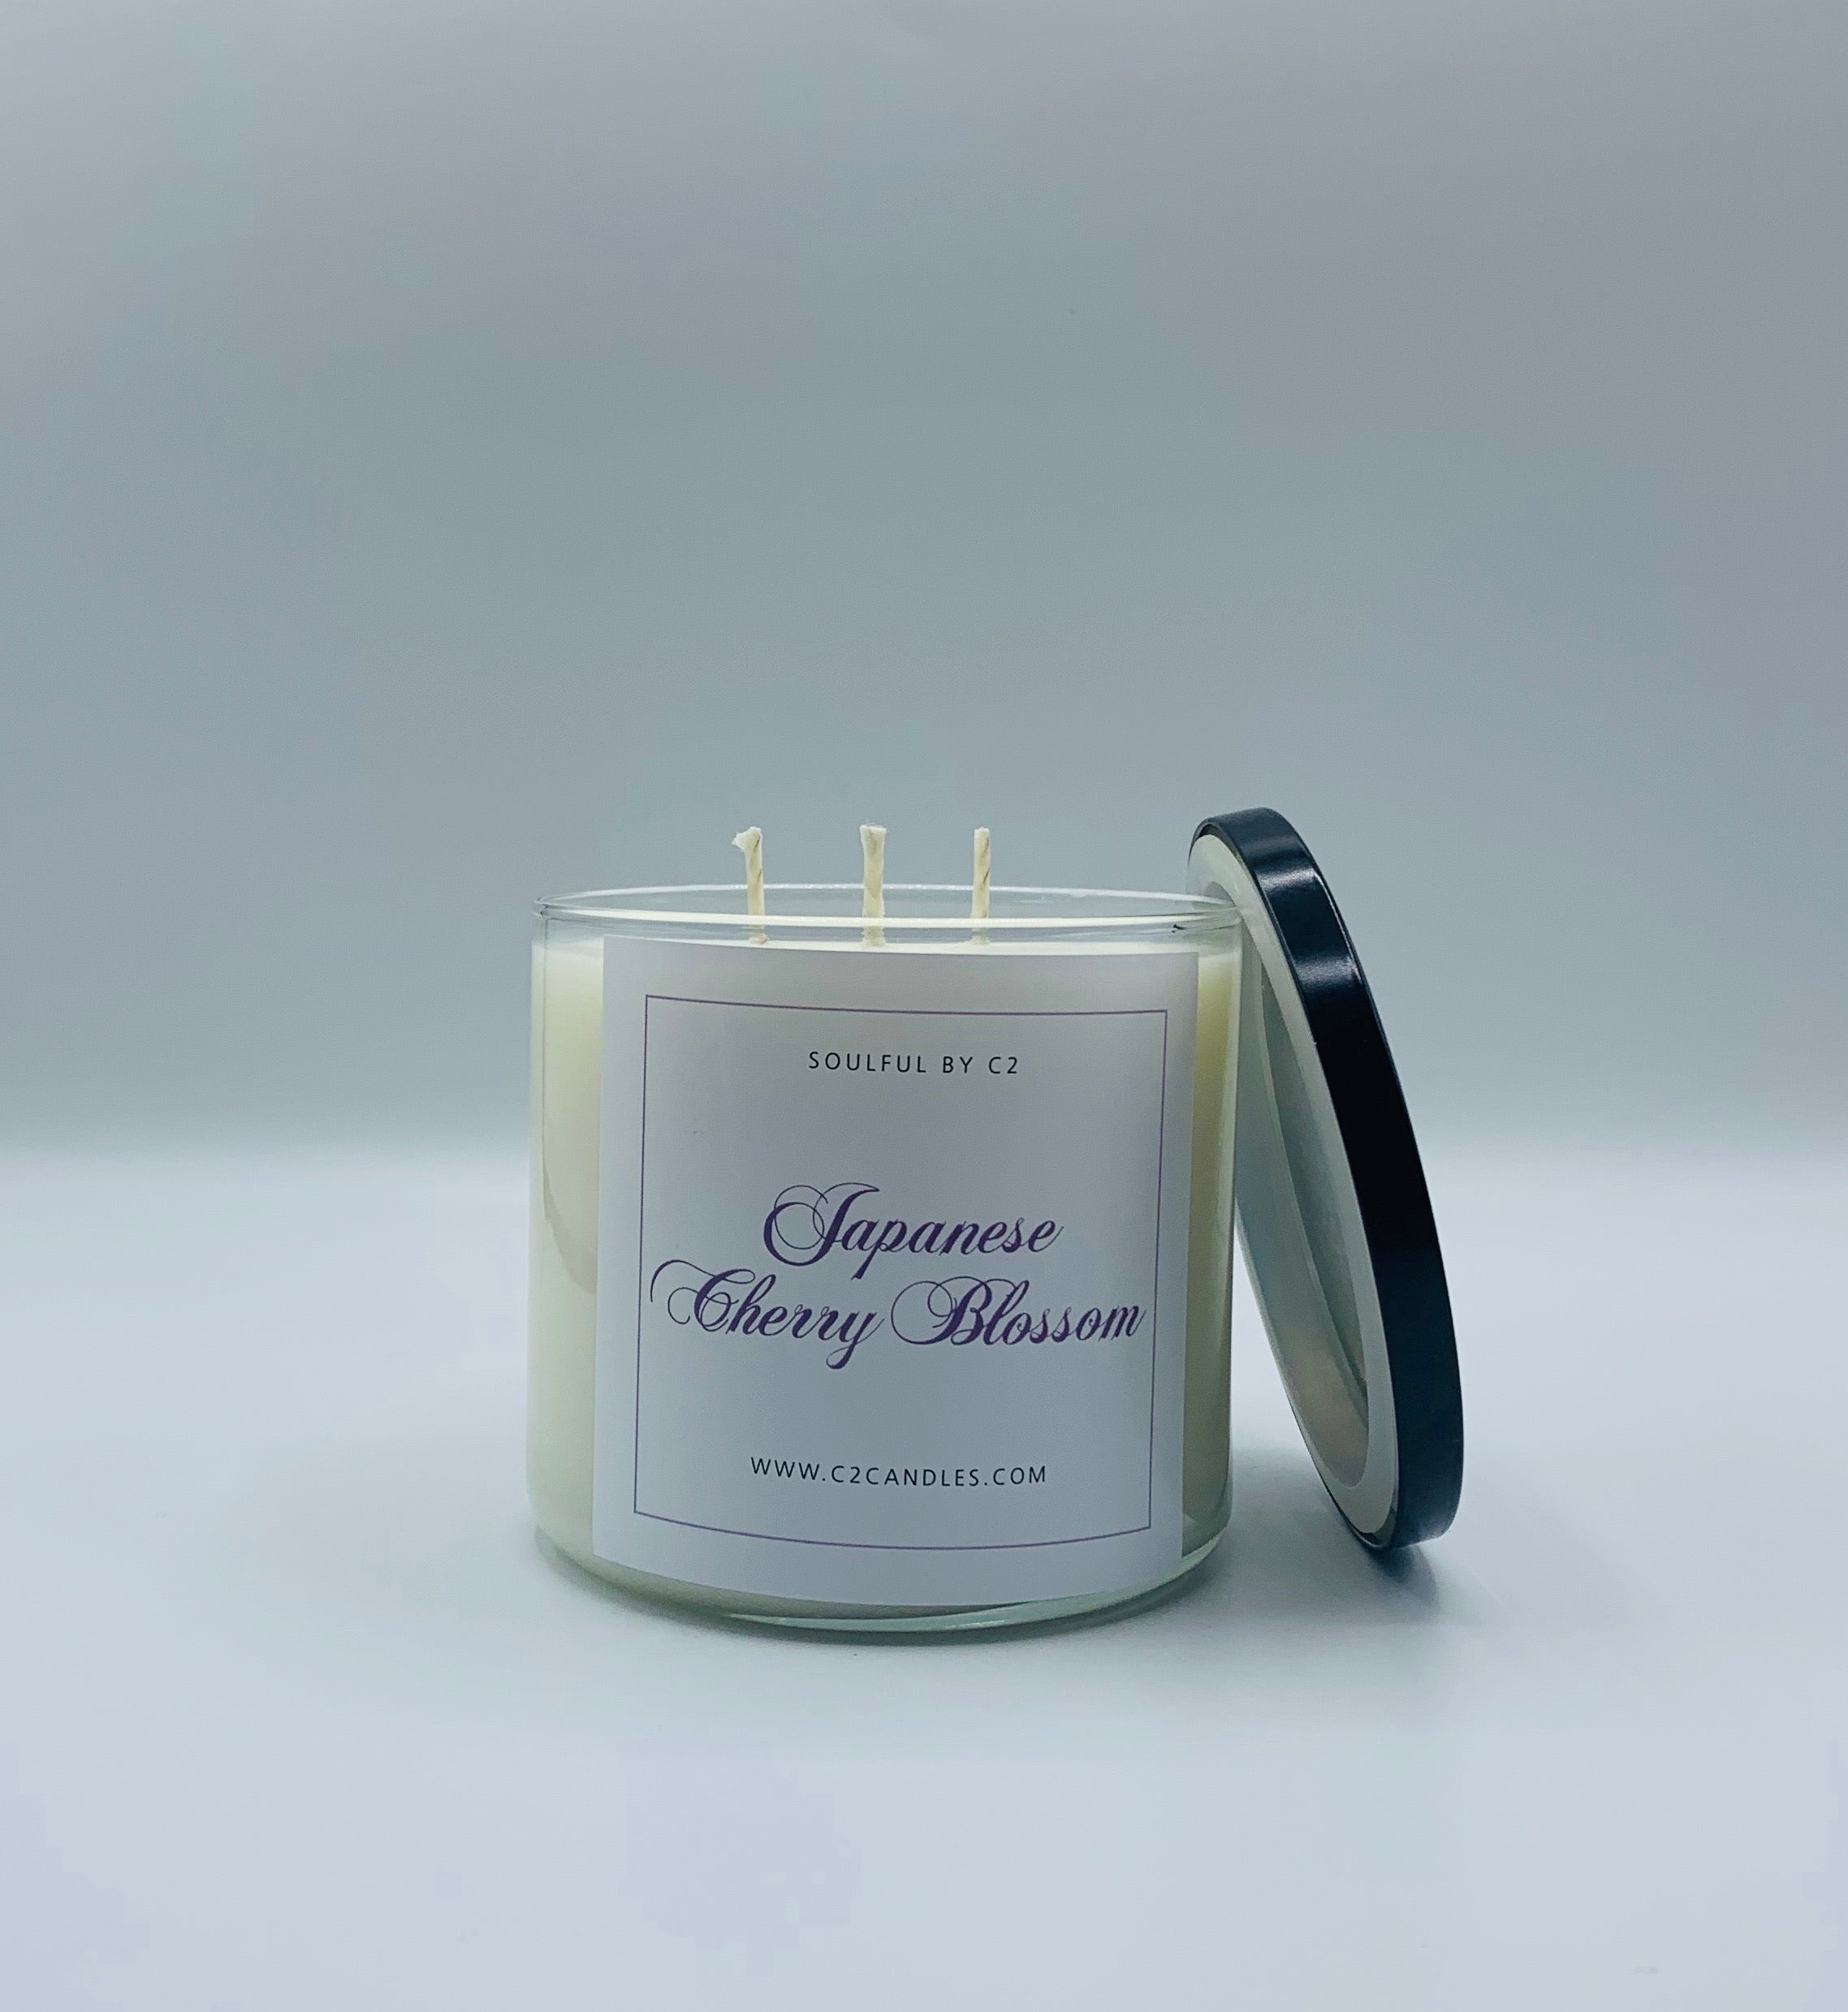 Japanese Cherry Blossom 16oz Soy Candle